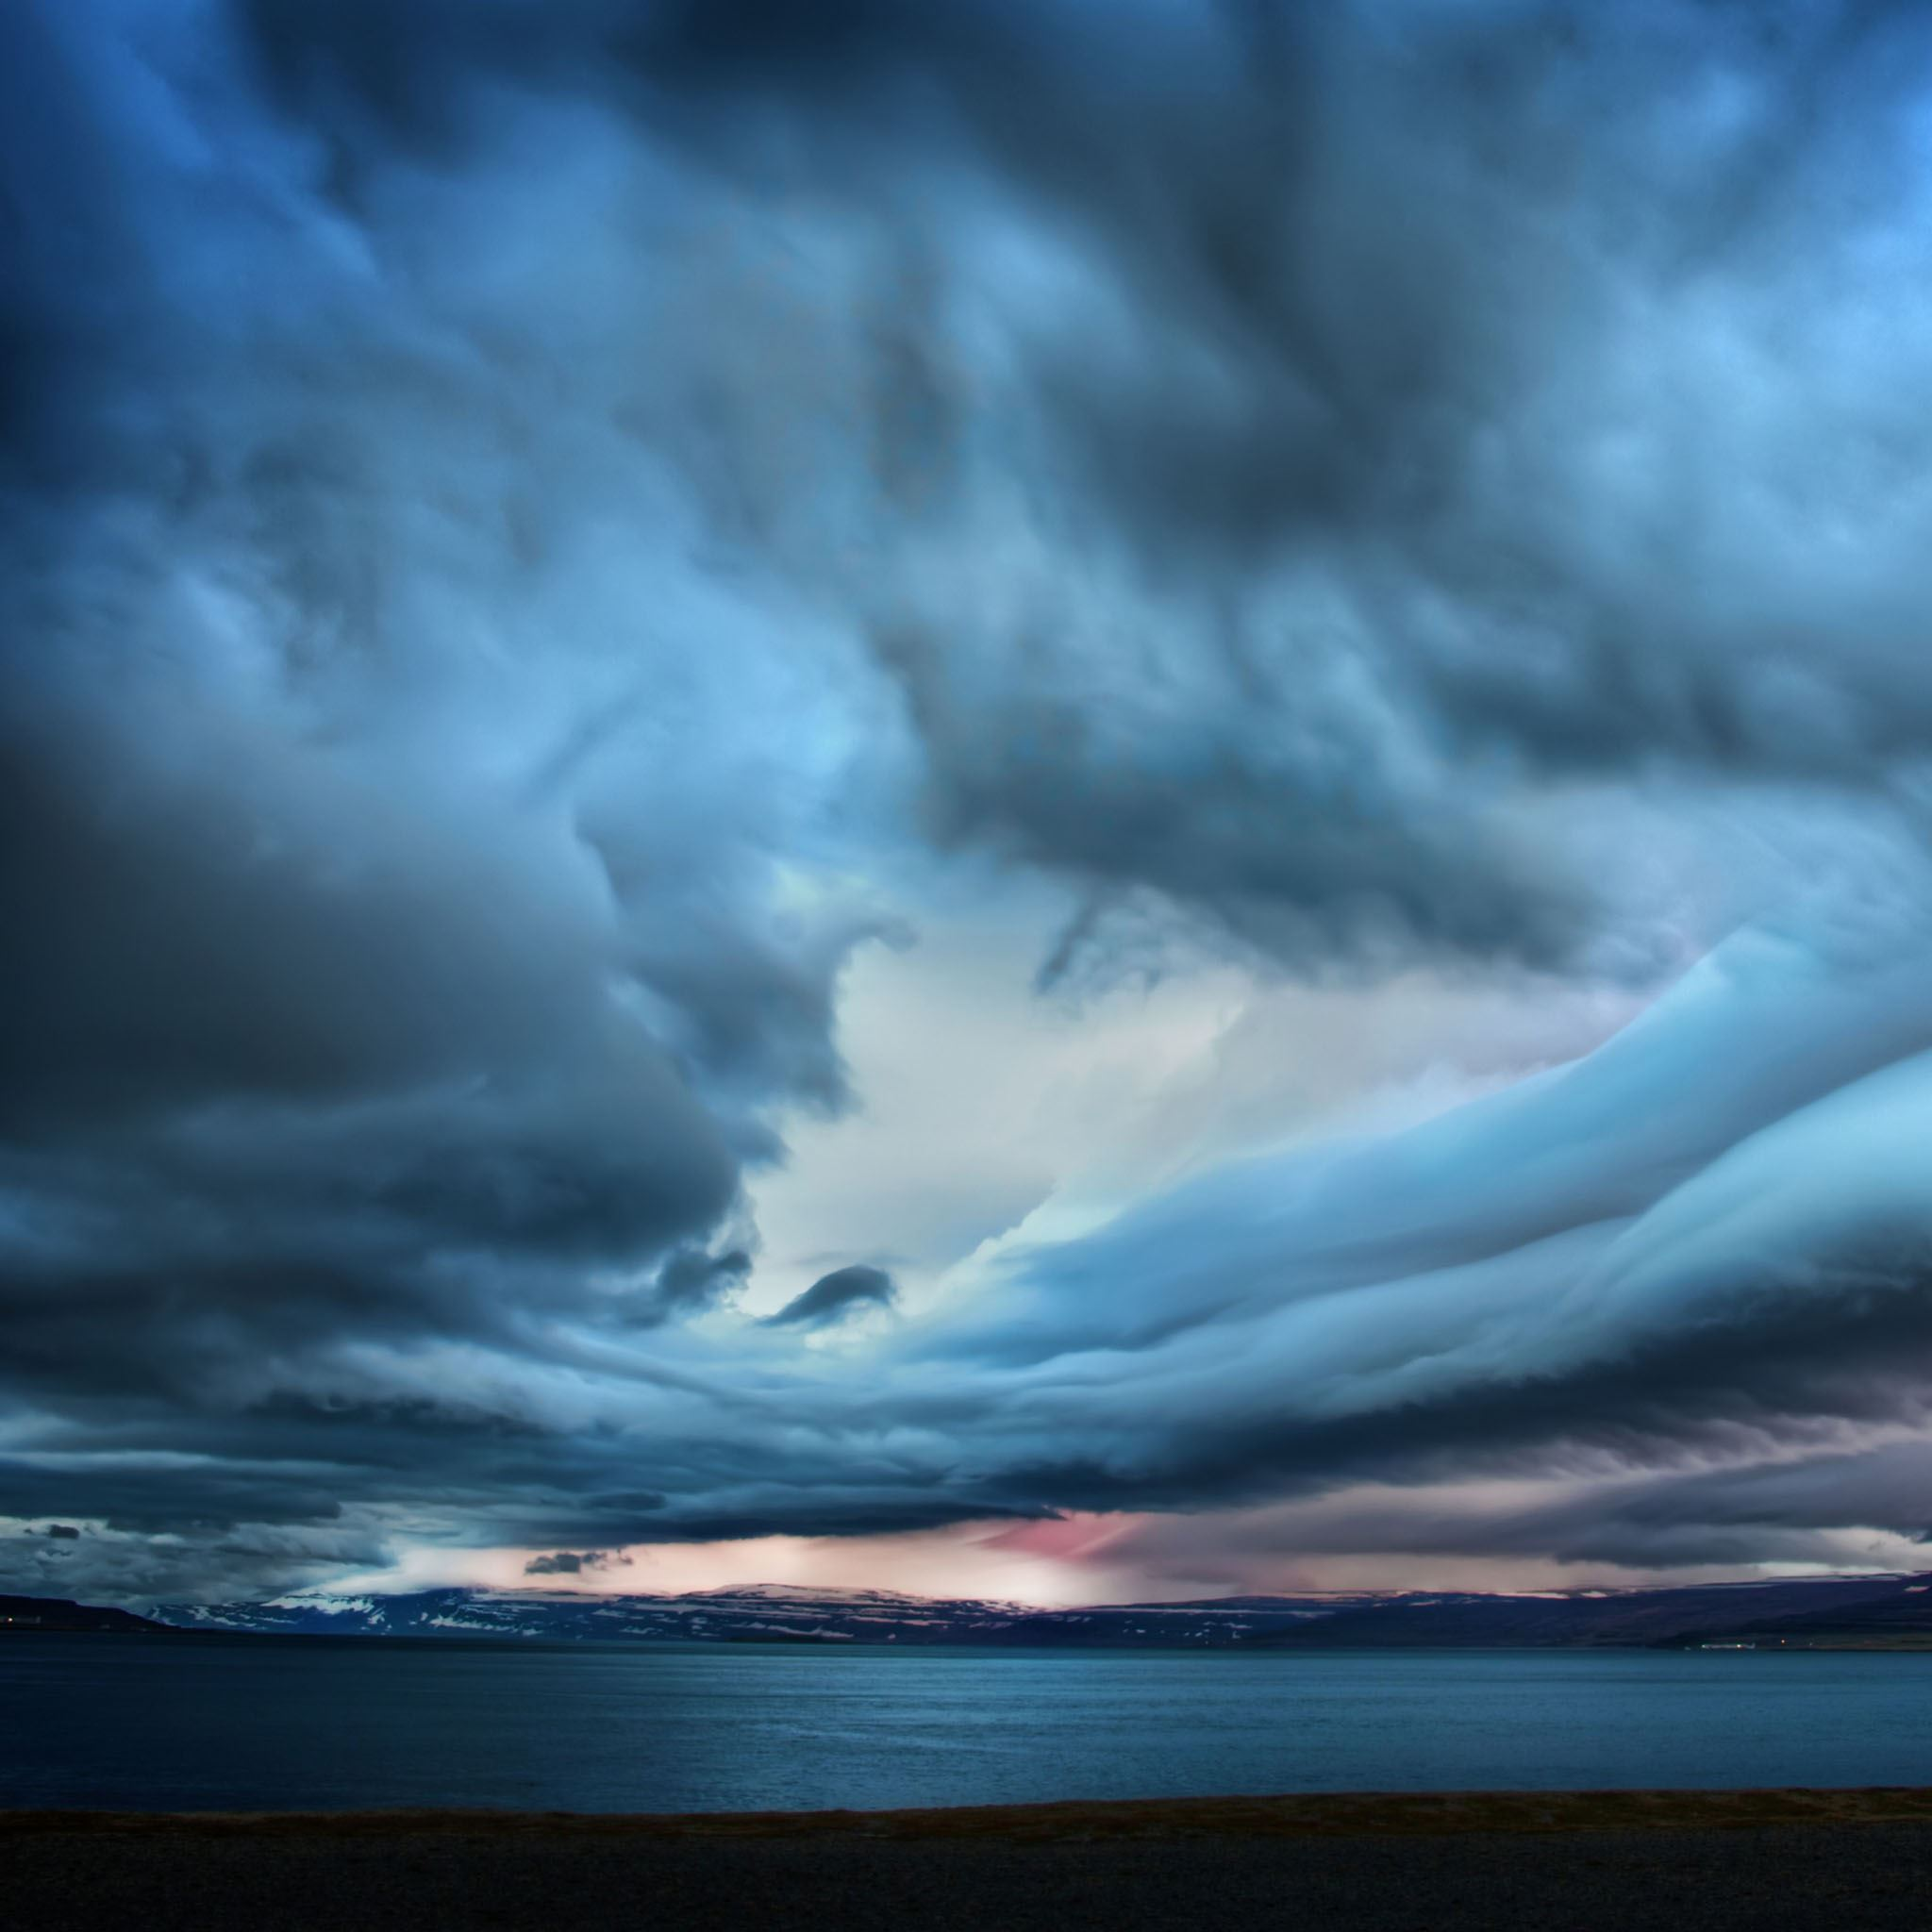 Storm over paradise iPad Air wallpaper